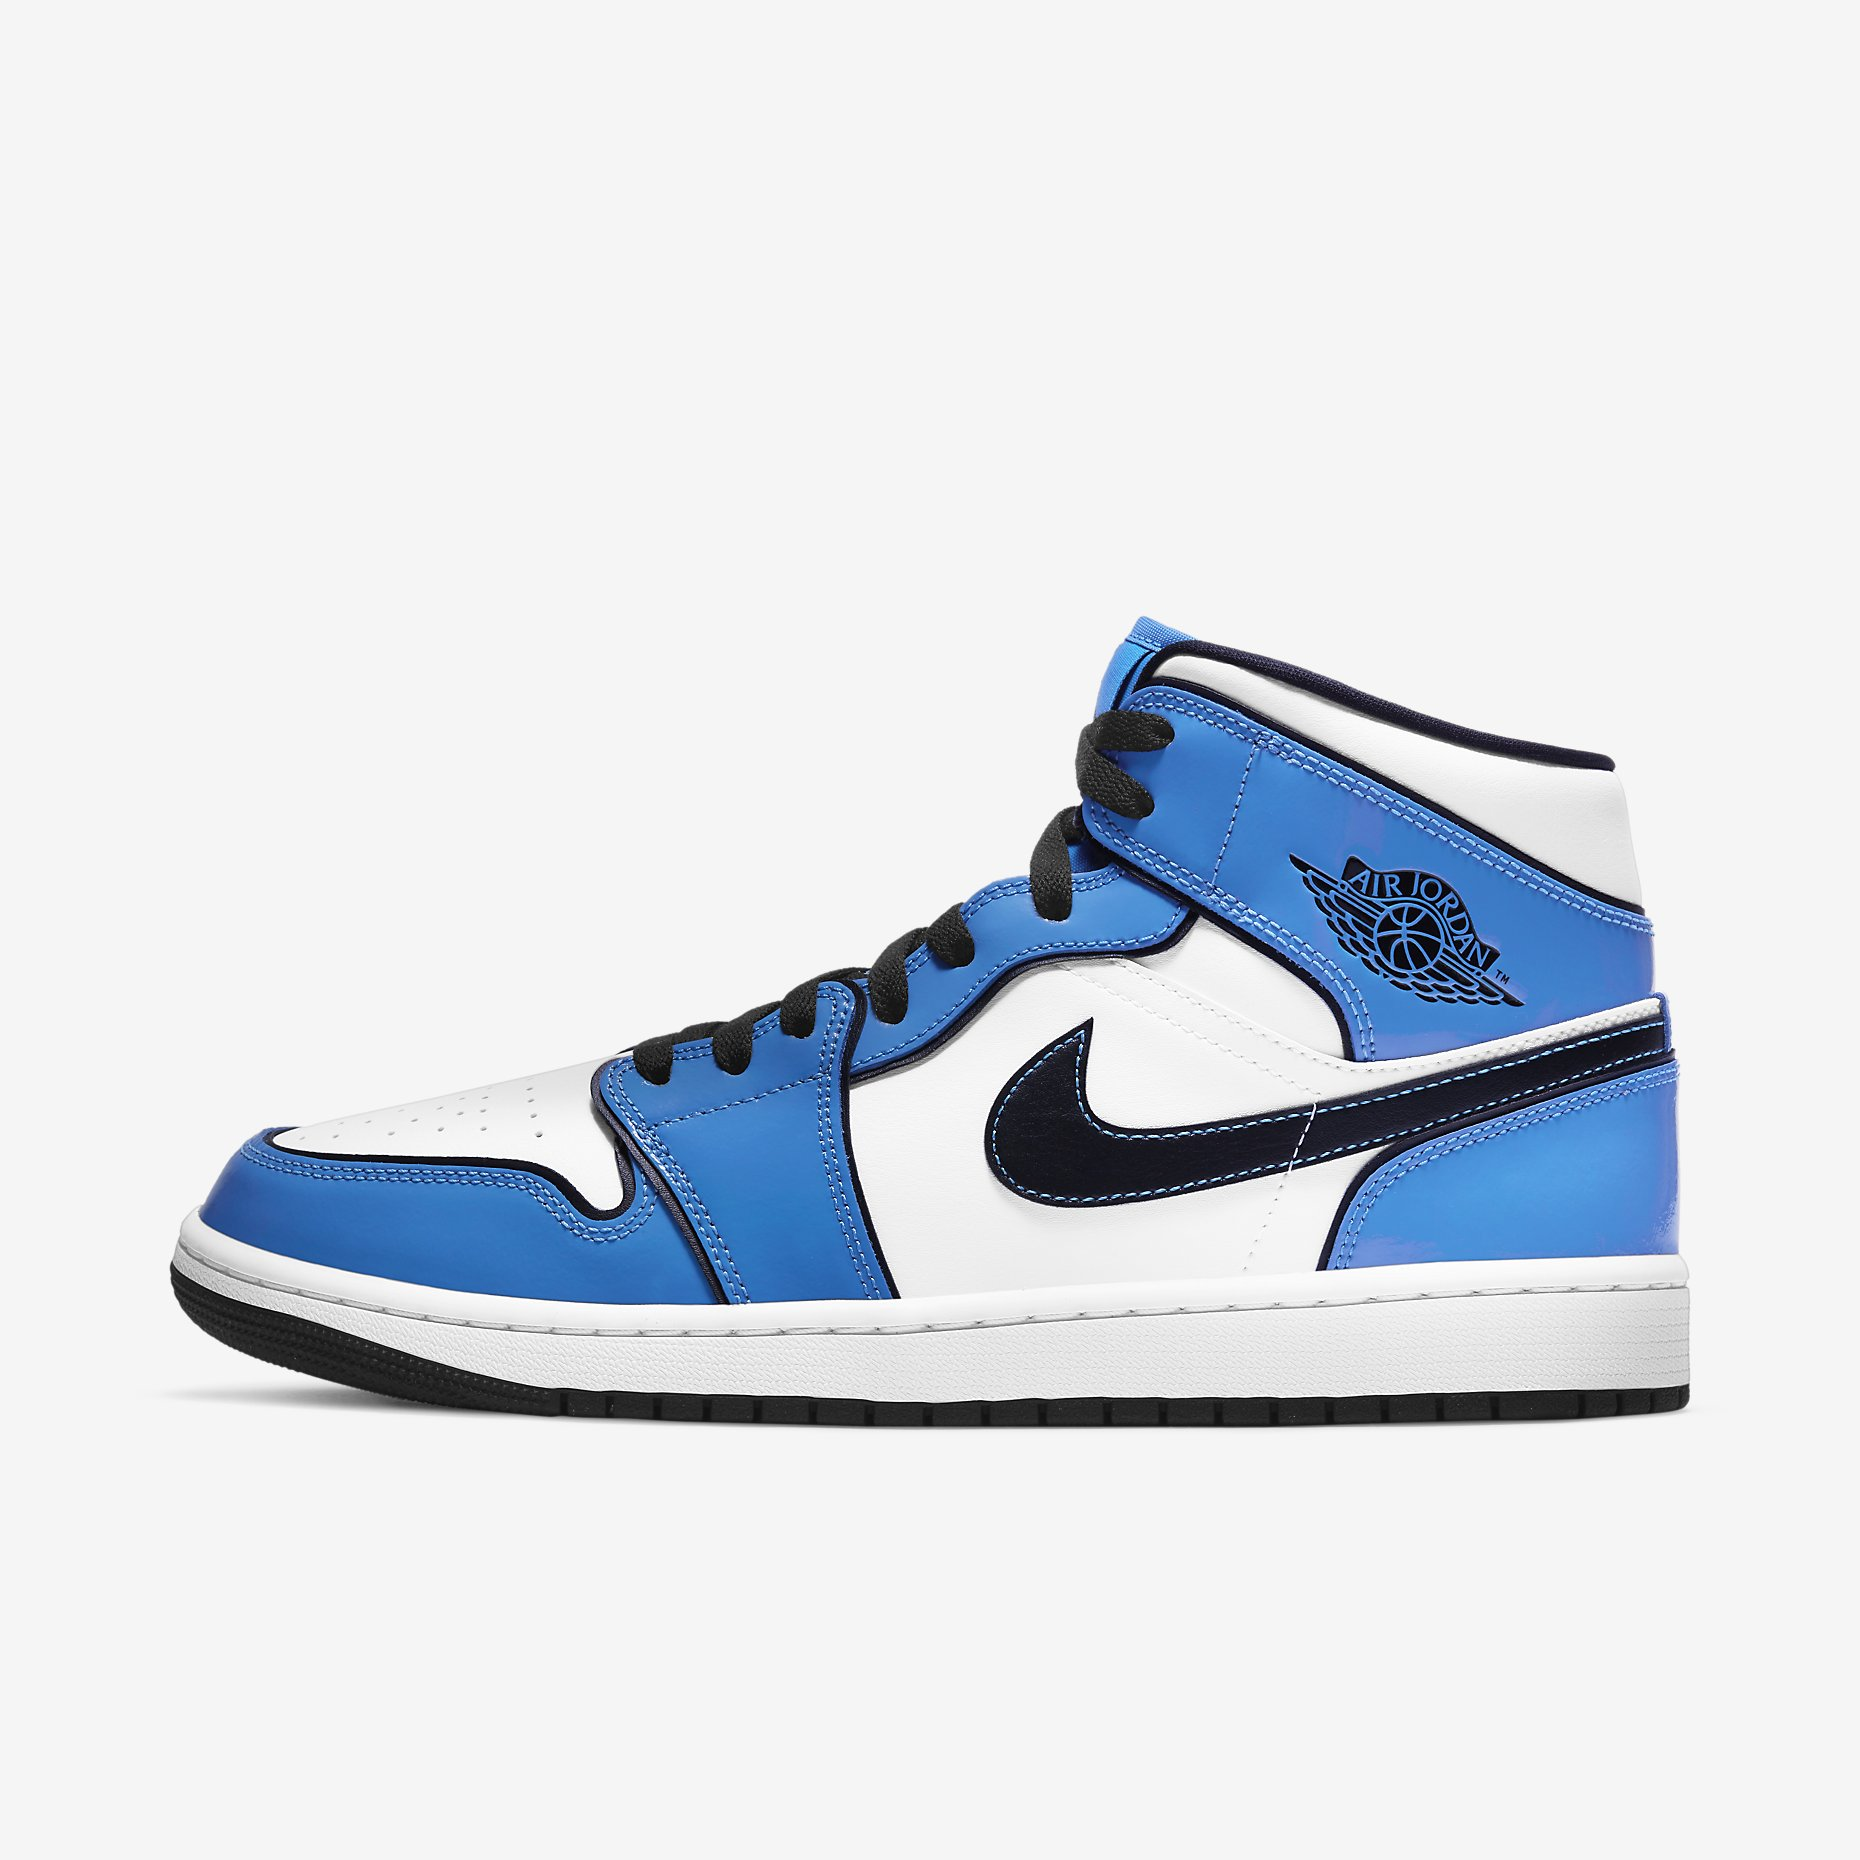 Air Jordan 1 Mid 'Signal Blue'}